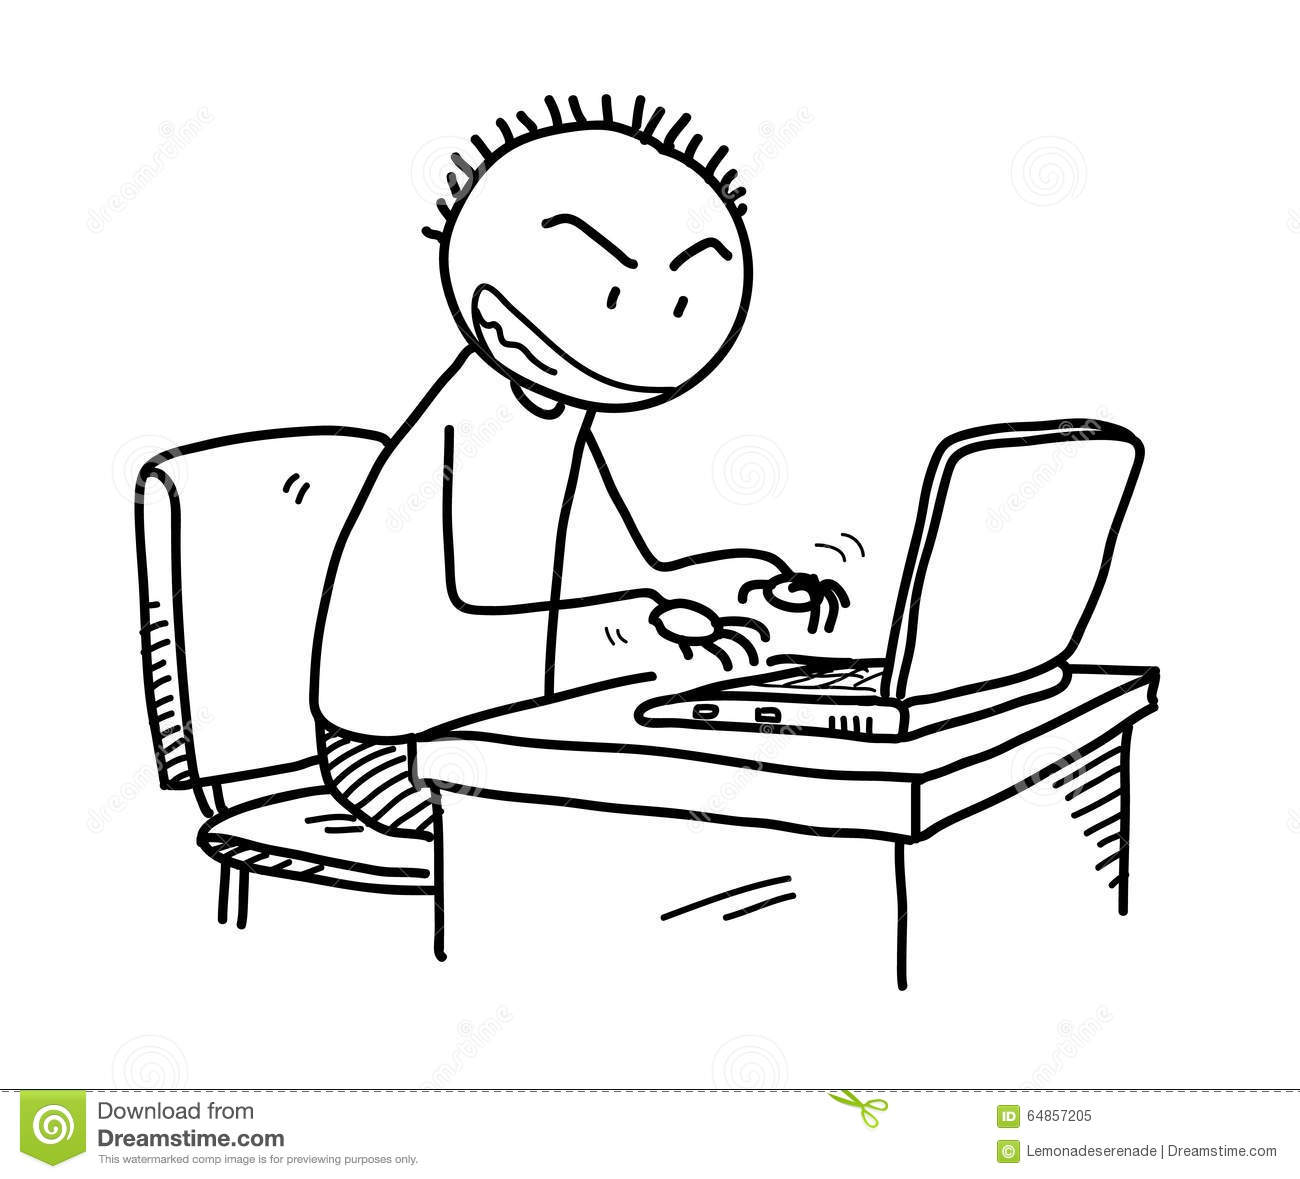 Image result for cybercrime clipart